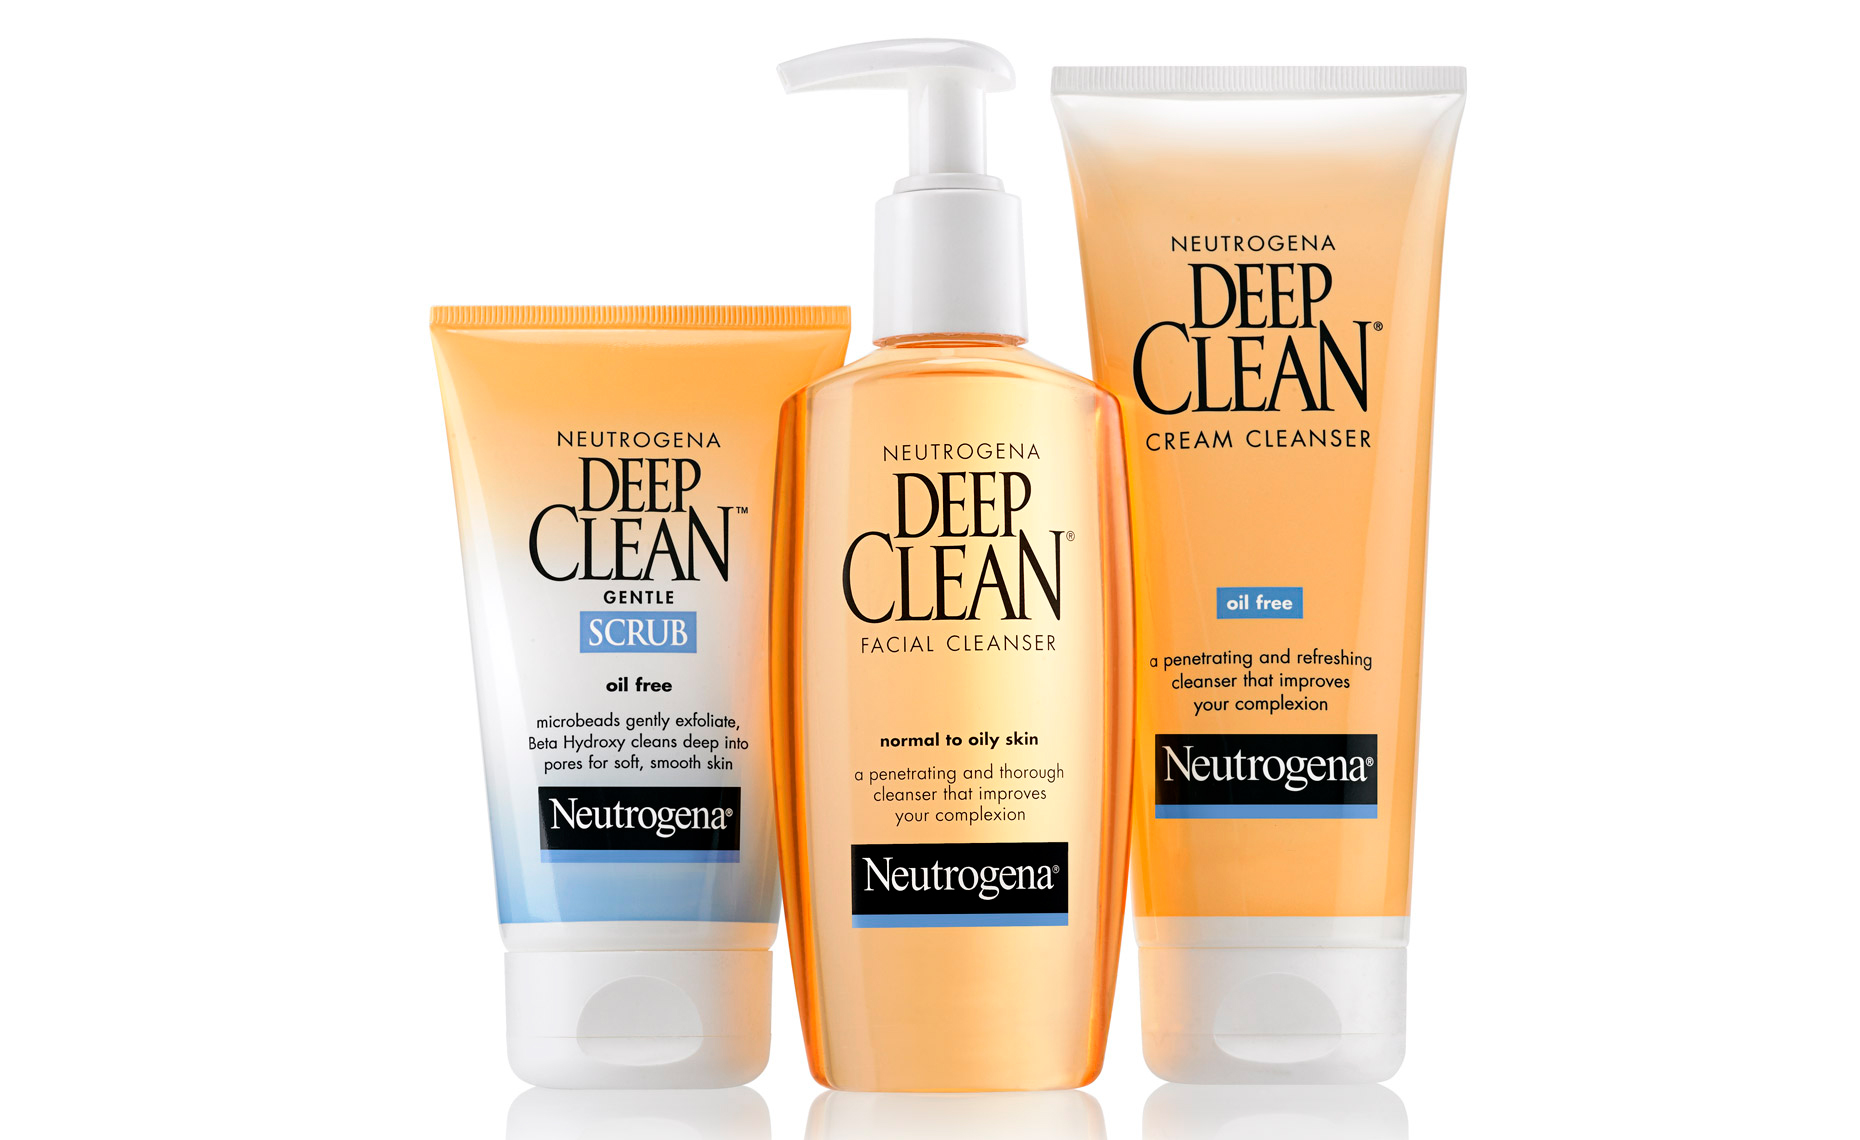 cosmetic_neutrogena-group